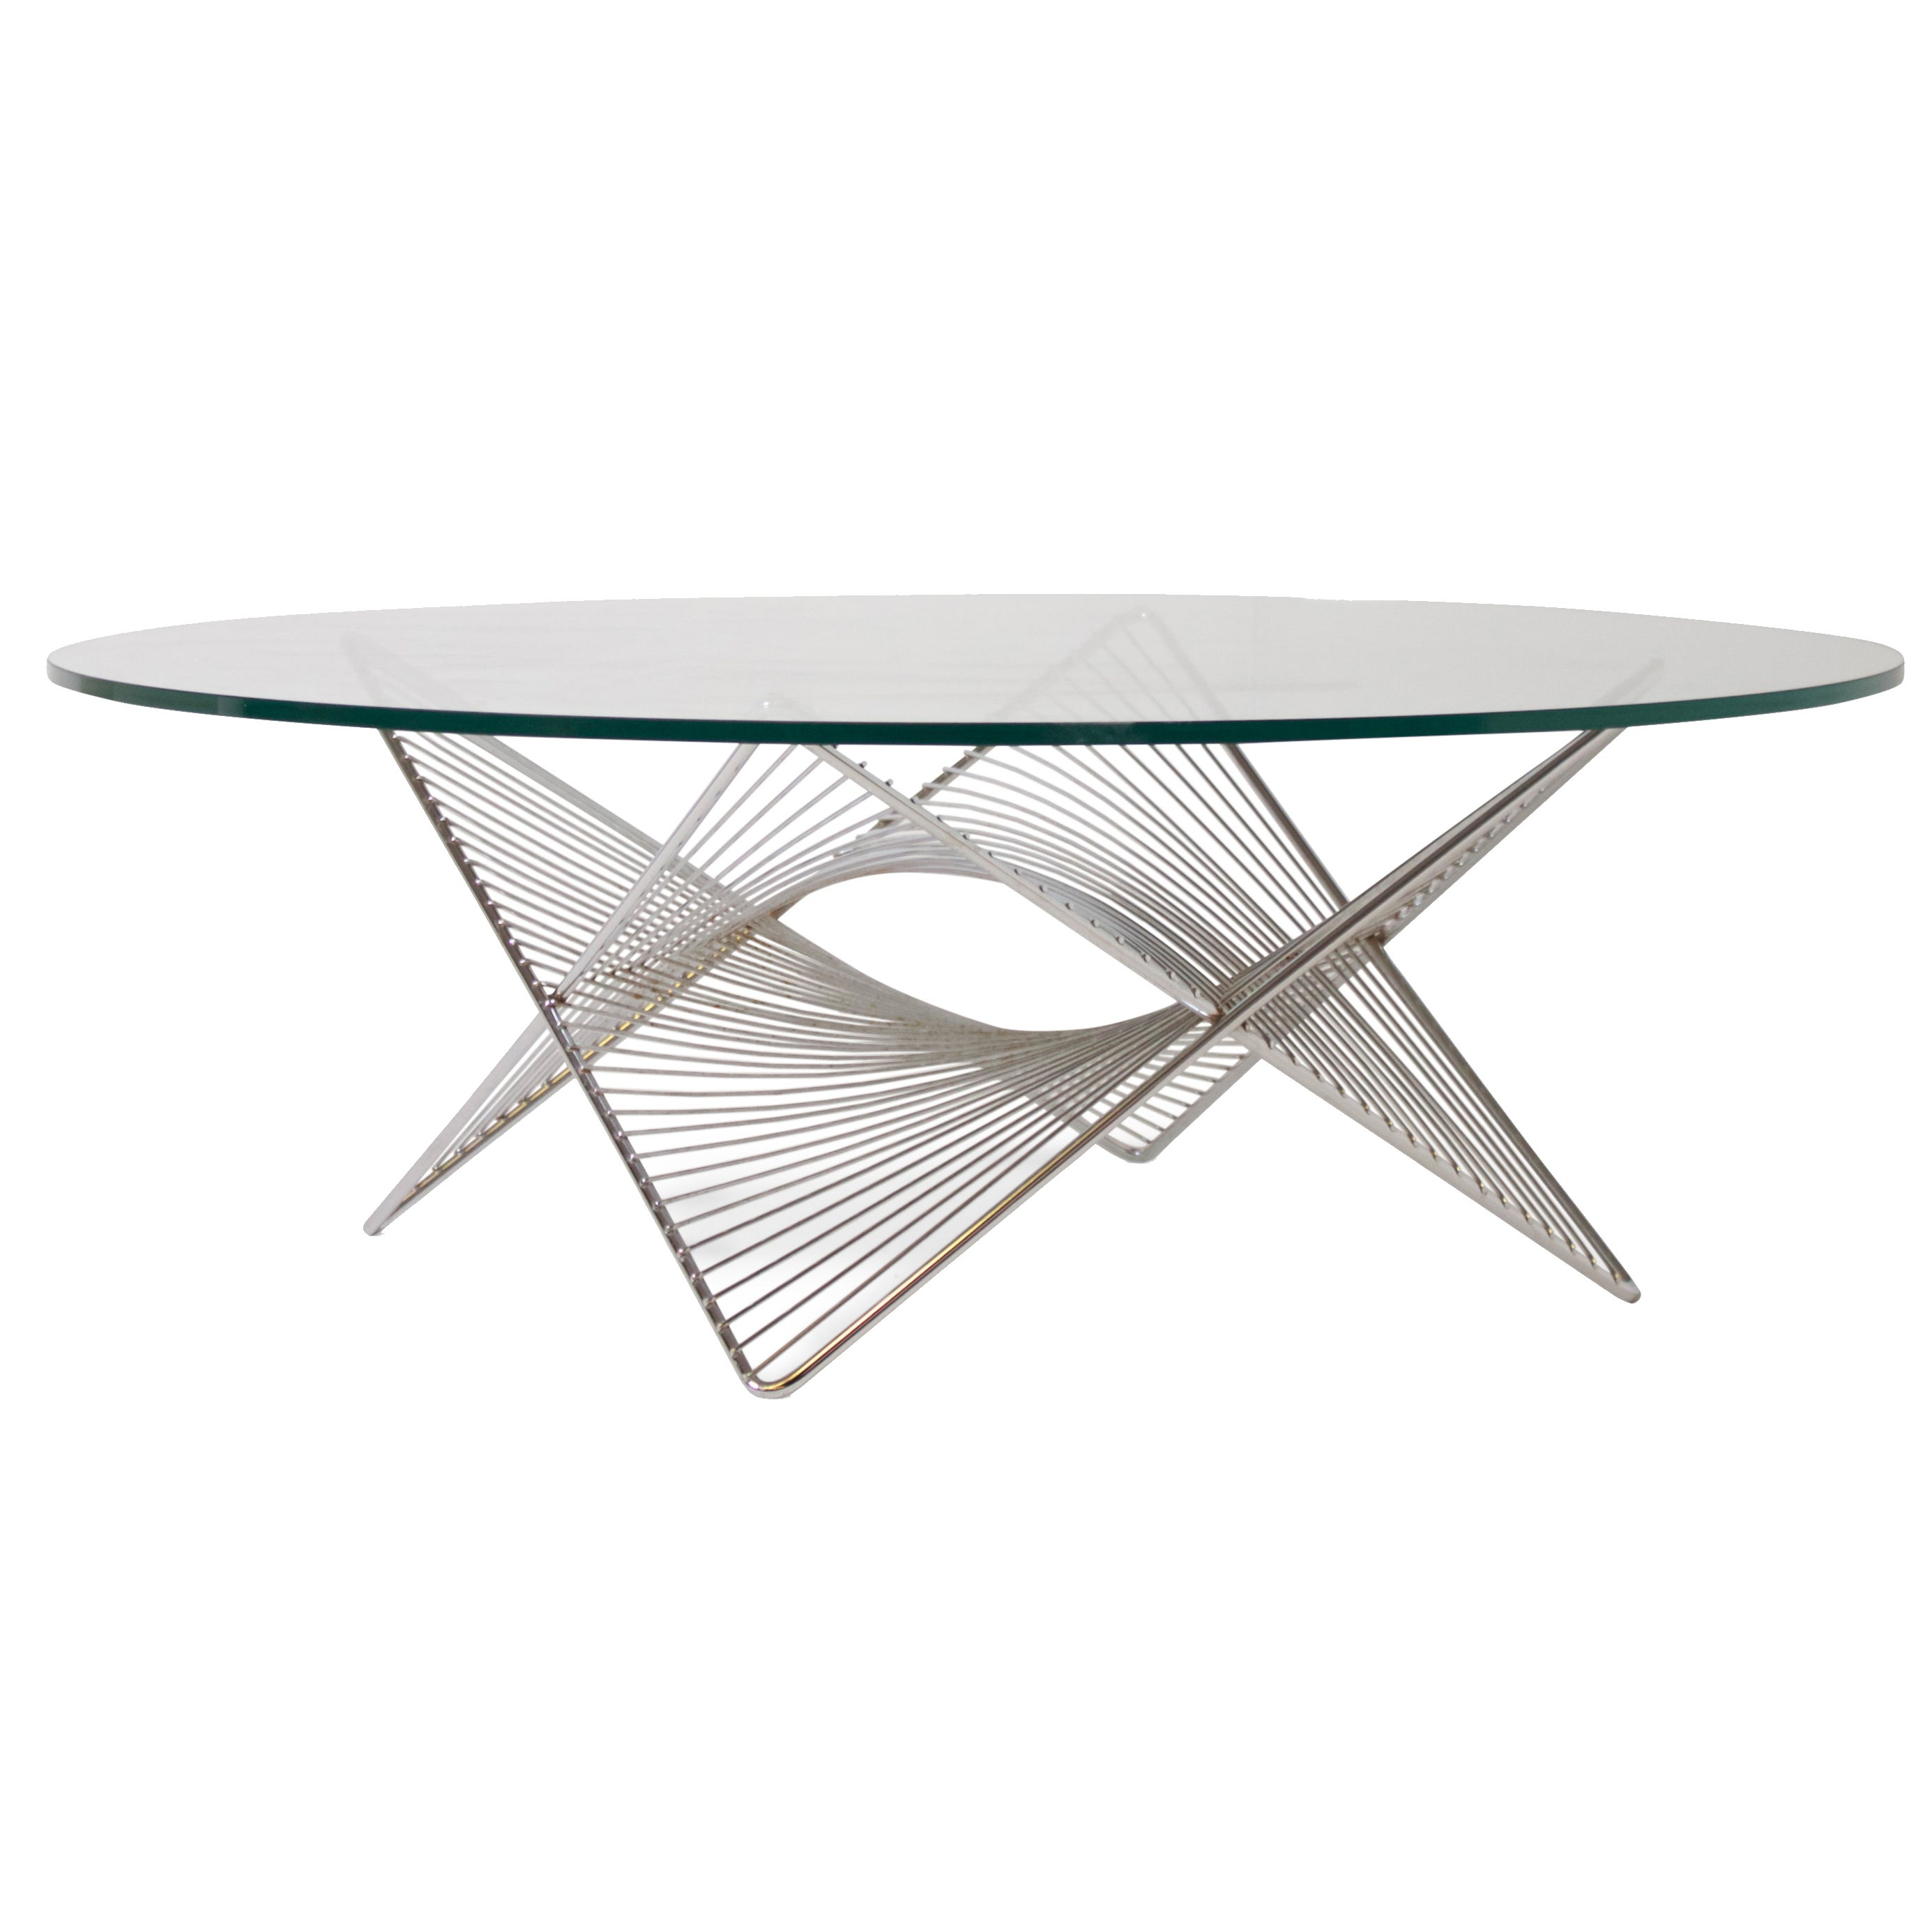 Rare 1970s Glass and Chrome Graphic Coffee Table